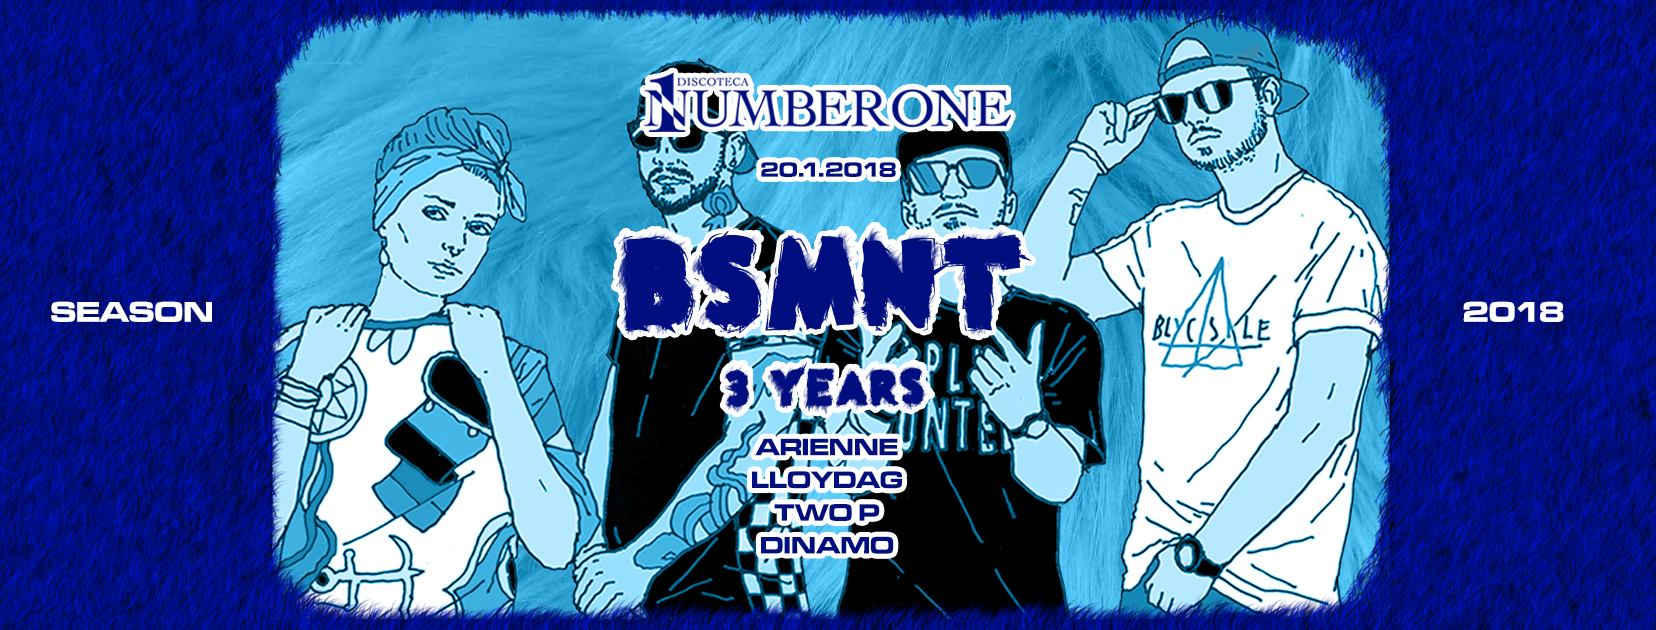 Basement & Number One – 3 YRS